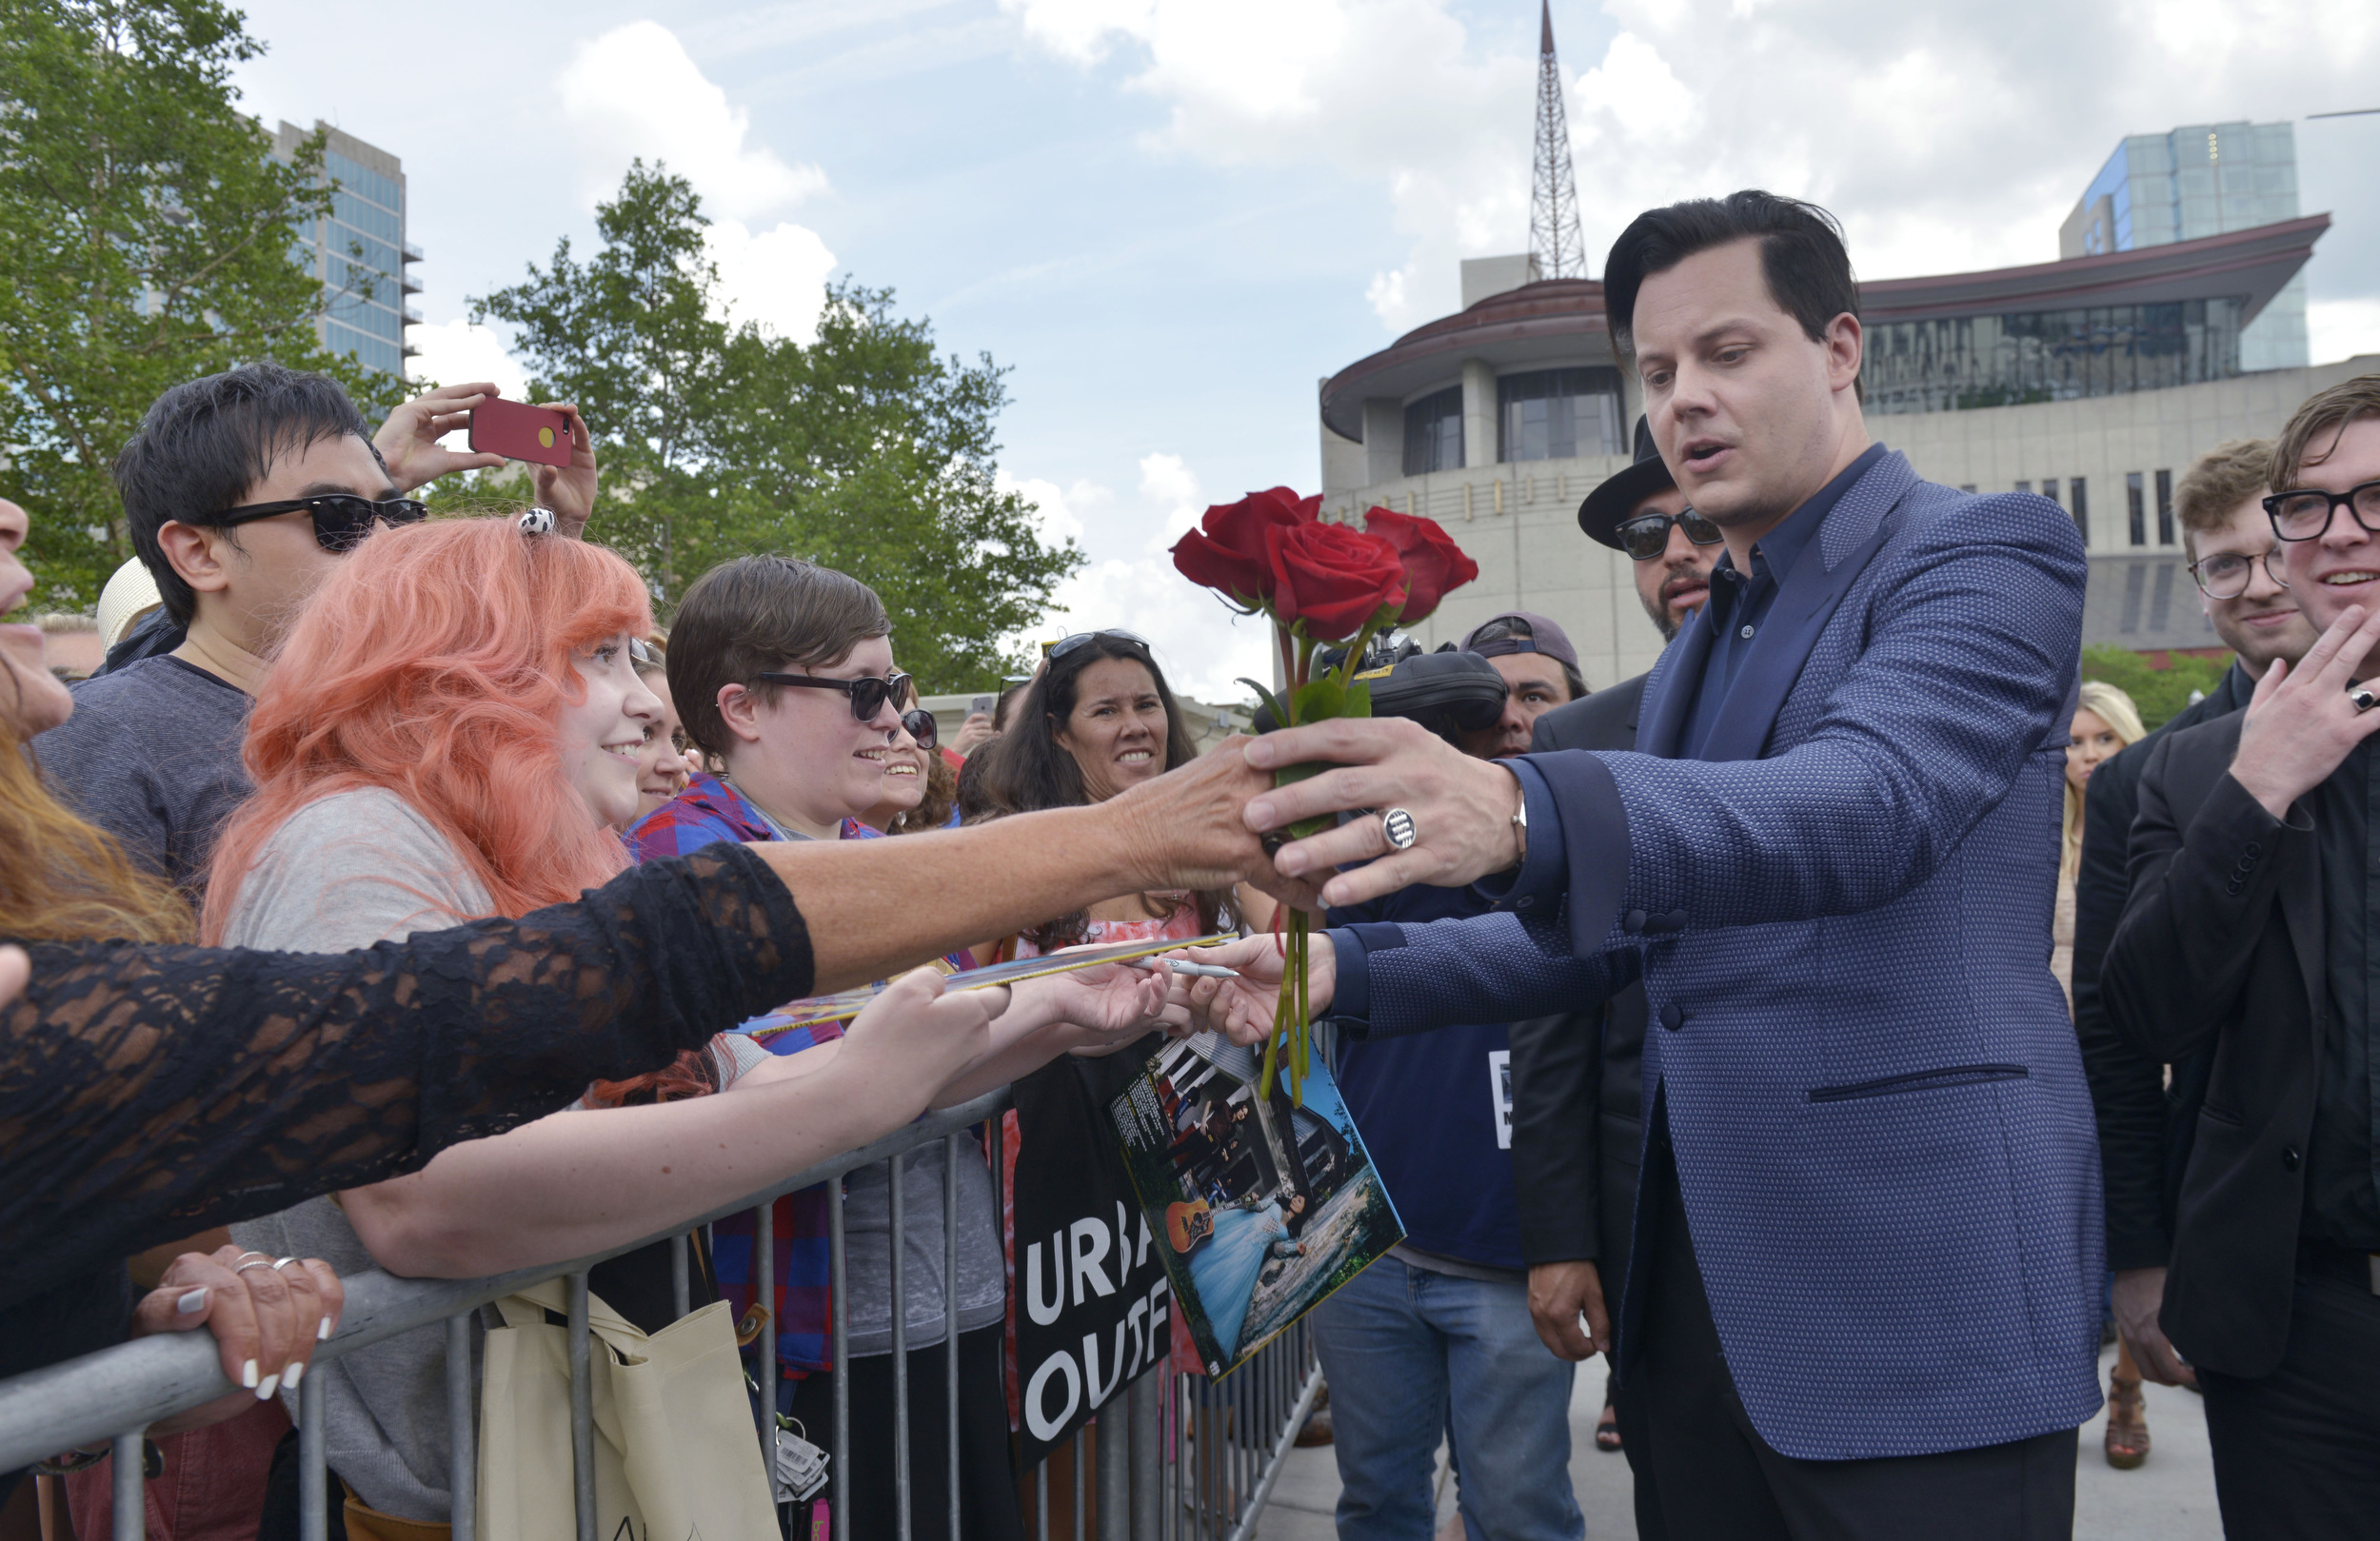 Jack White accepts a rose from a fan after being inducted with Loretta Lynn to the Music City Walk of Fame June 4 2015 in Nashville, Tenn.